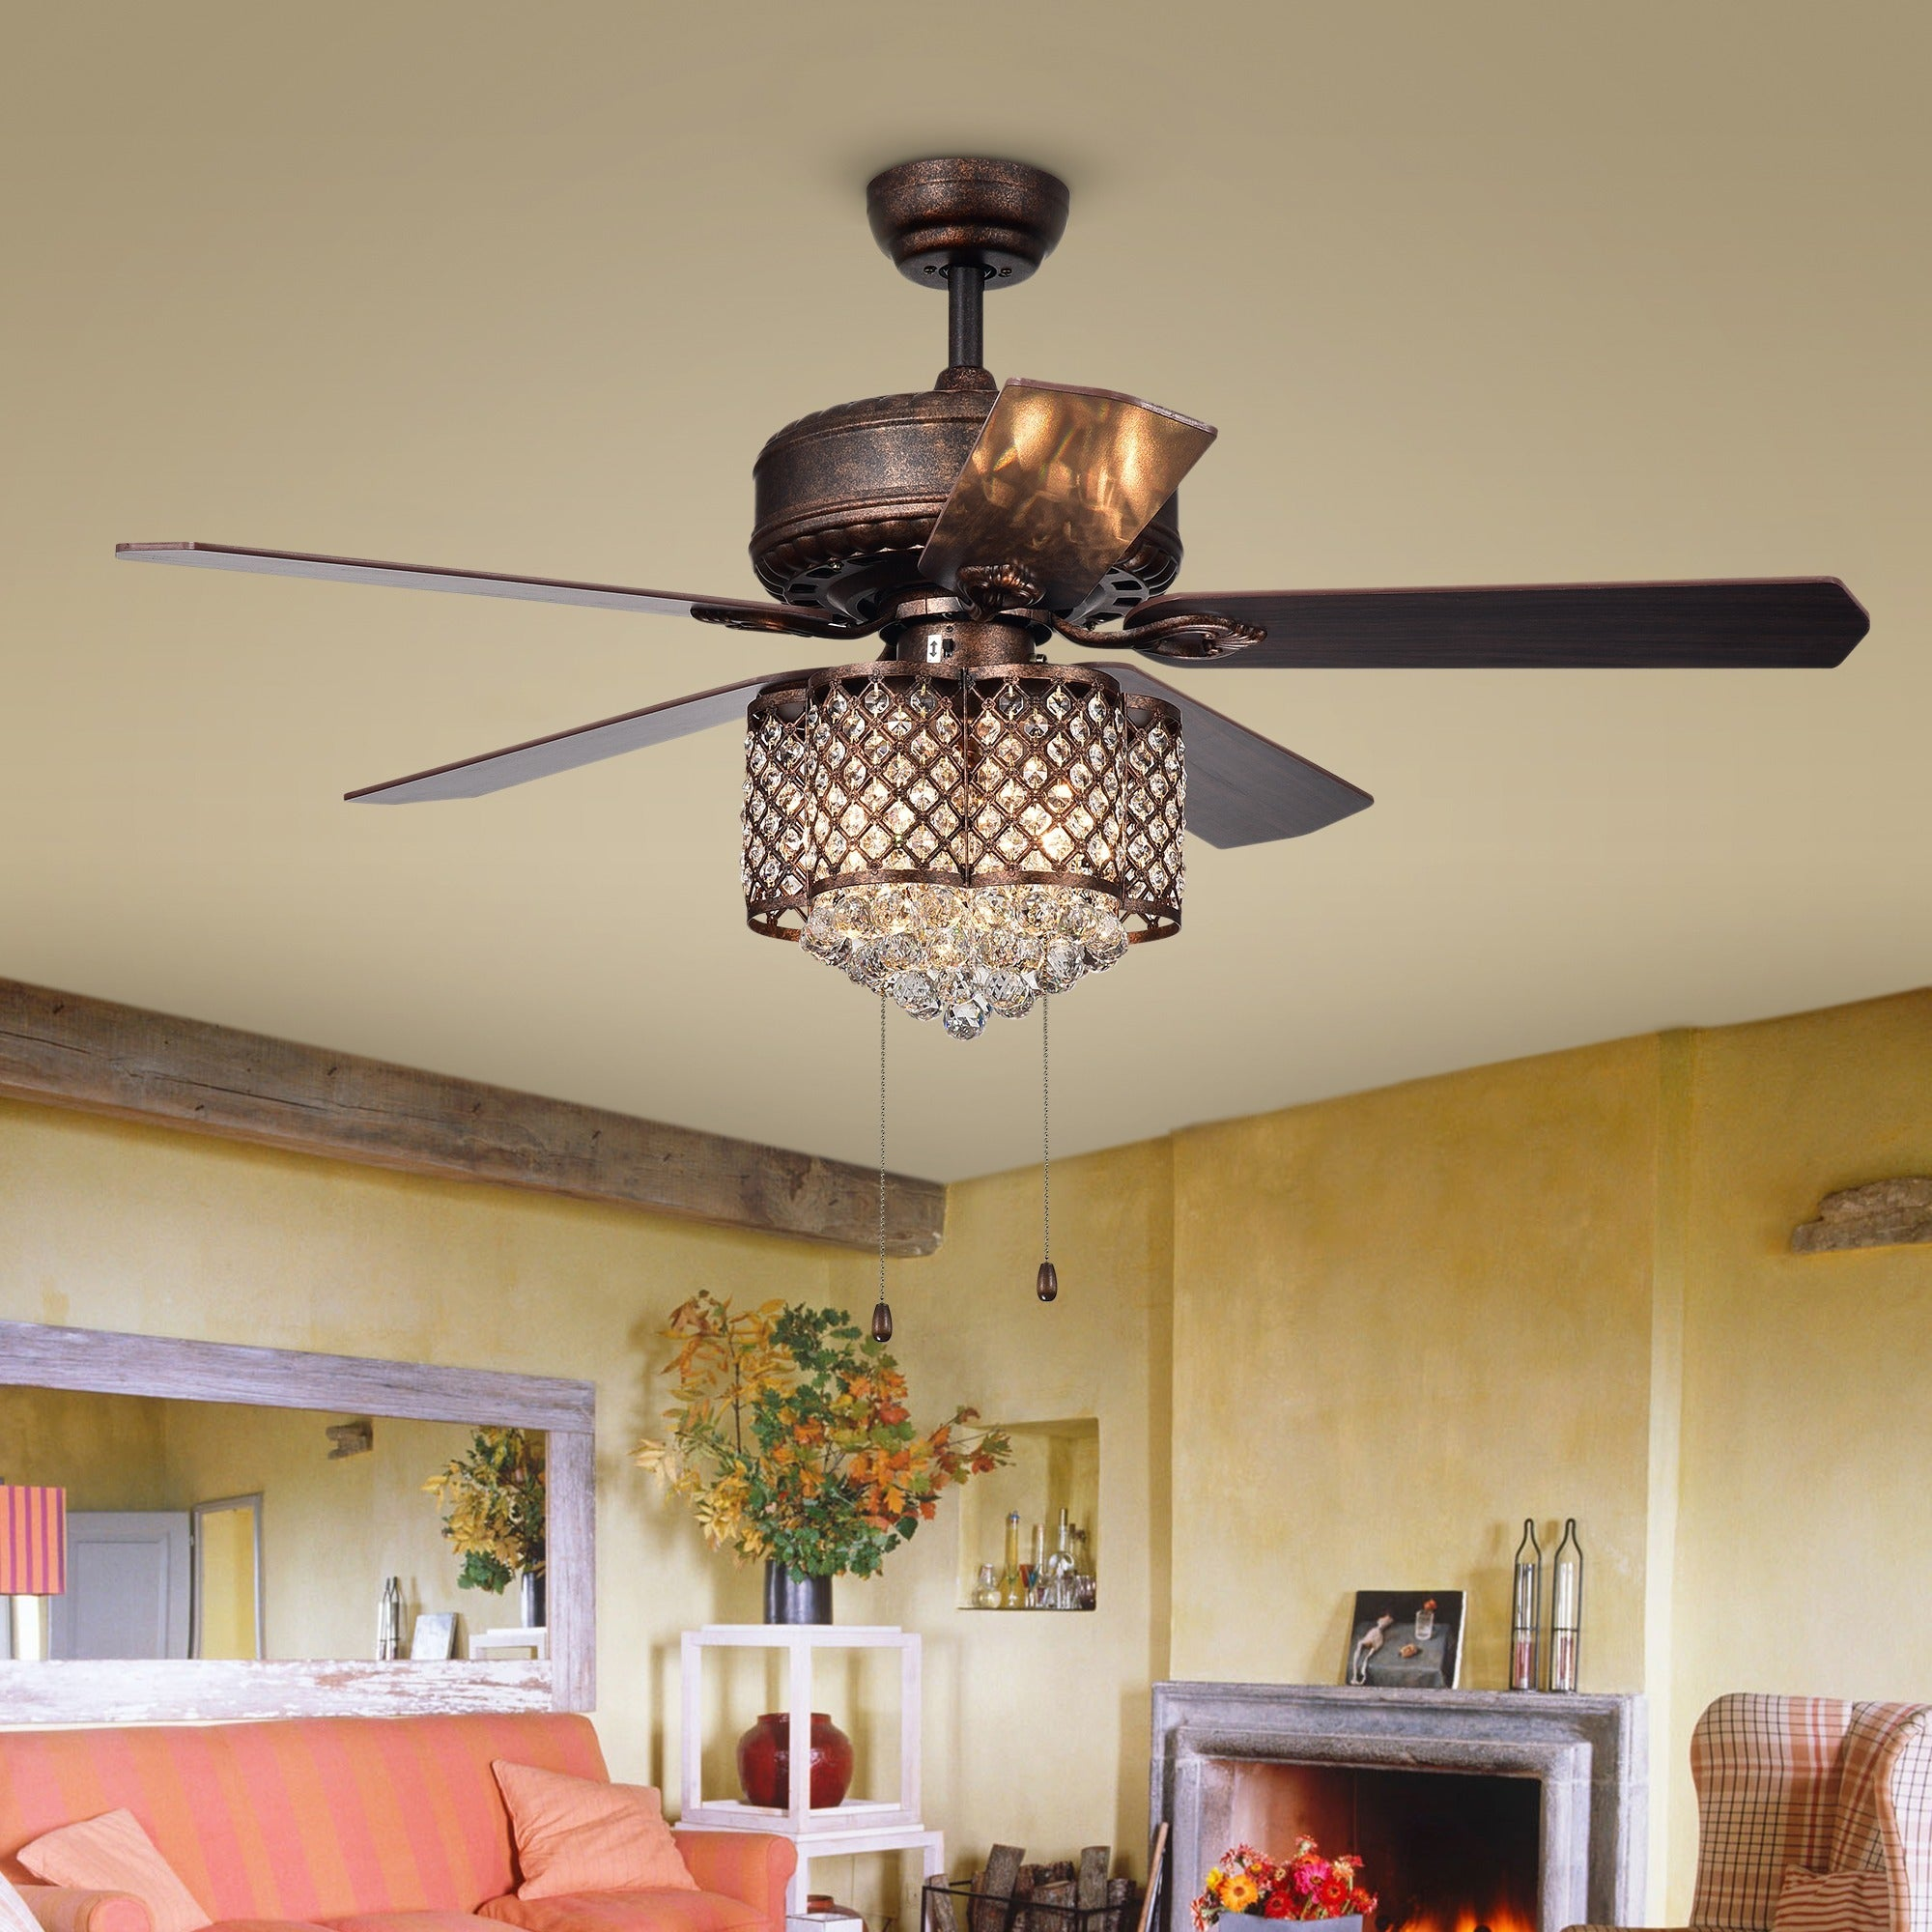 Pshita 3 light Crystal 5 blade 52 inch Rustic Bronze Ceiling Fan